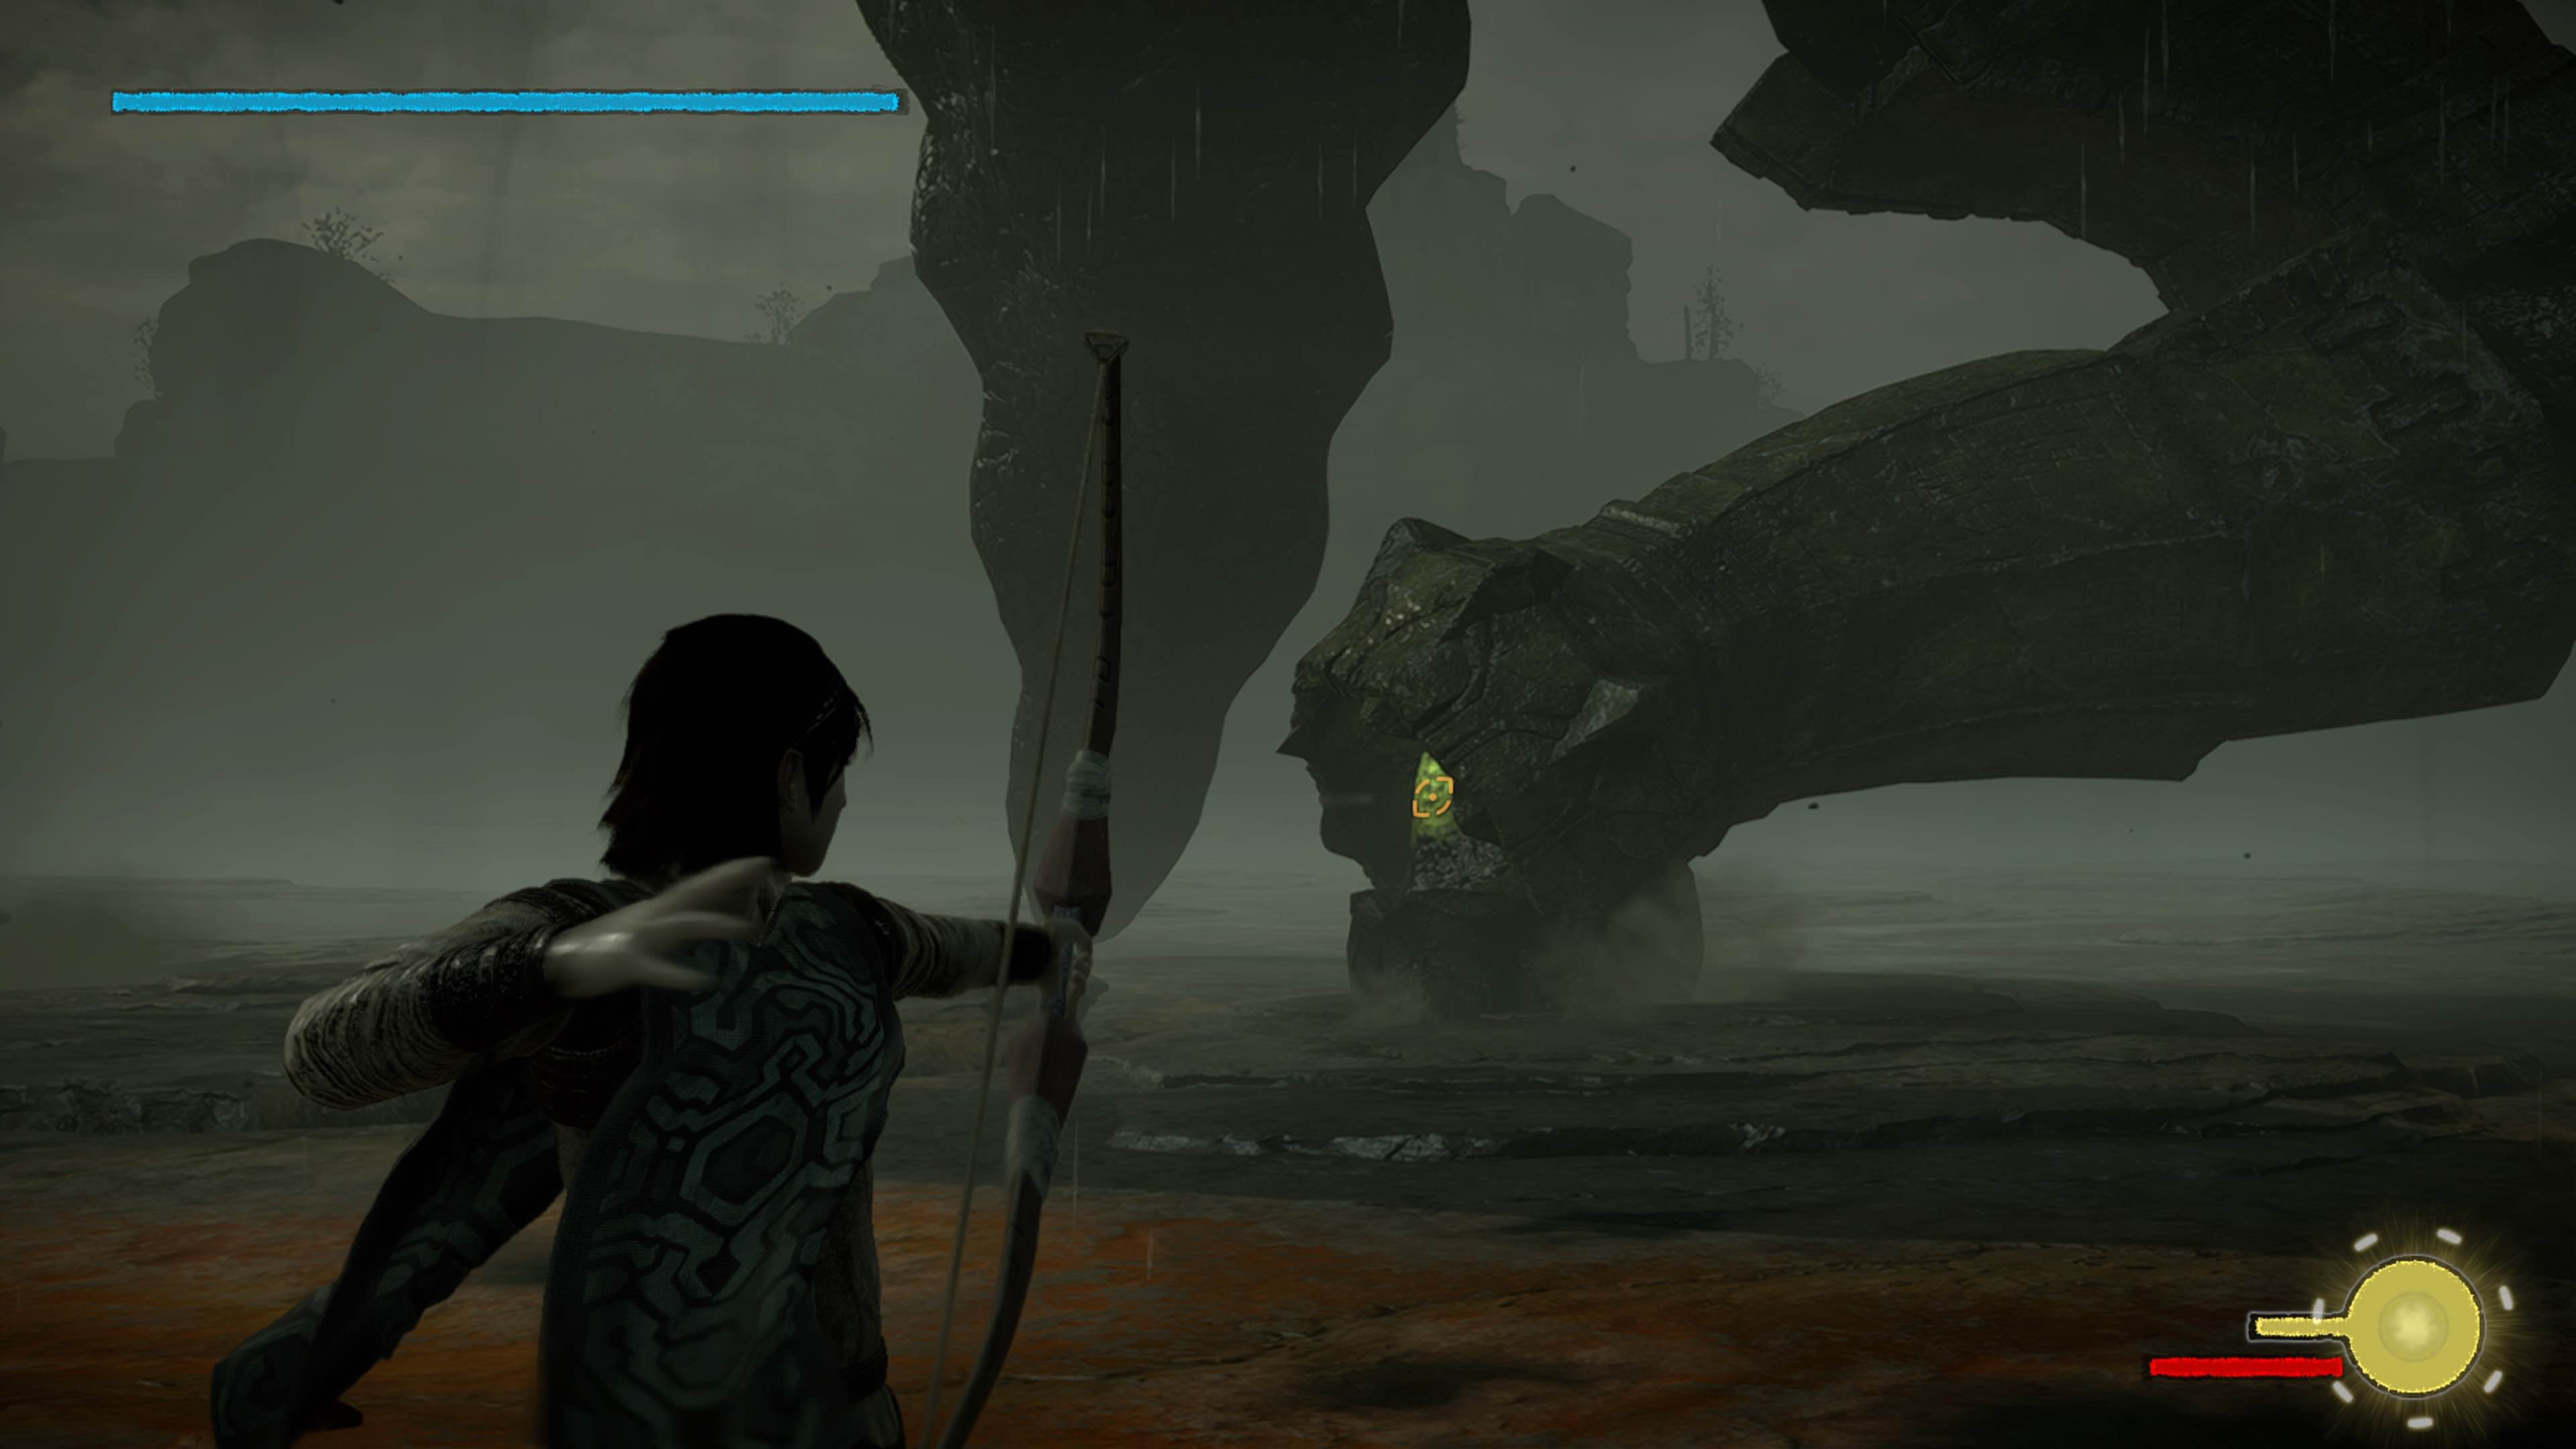 Shadow_of_the_Colossus_Coloso_9_2